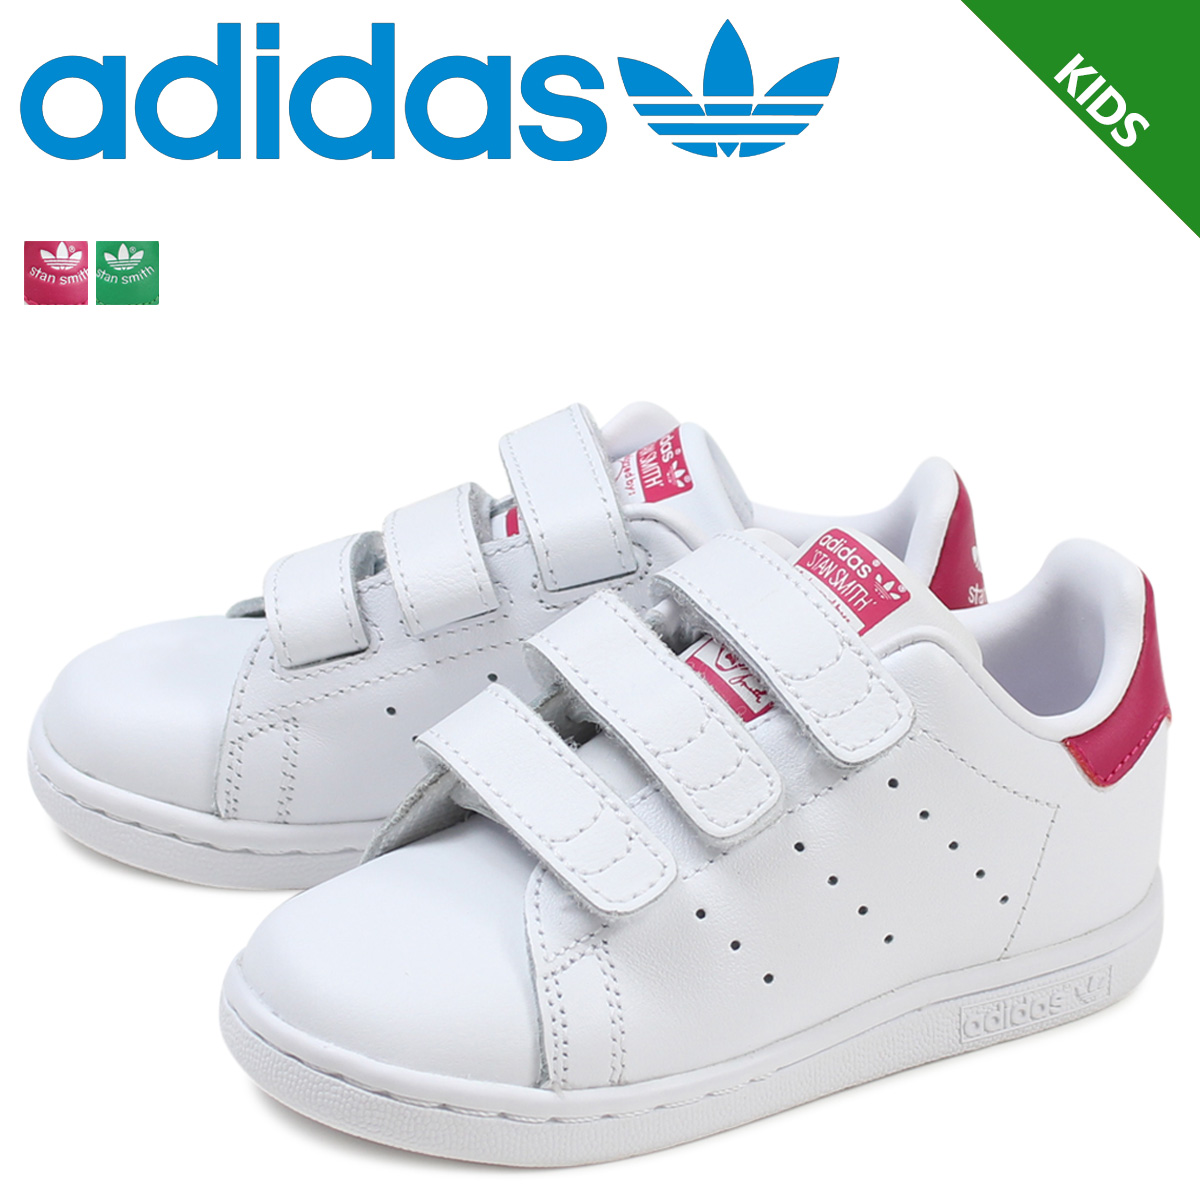 eb108387 [SOLD OUT] adidas originals adidas Originals Stan Smith sneakers baby kids  STAN SMITH CF I B32704 shoes white